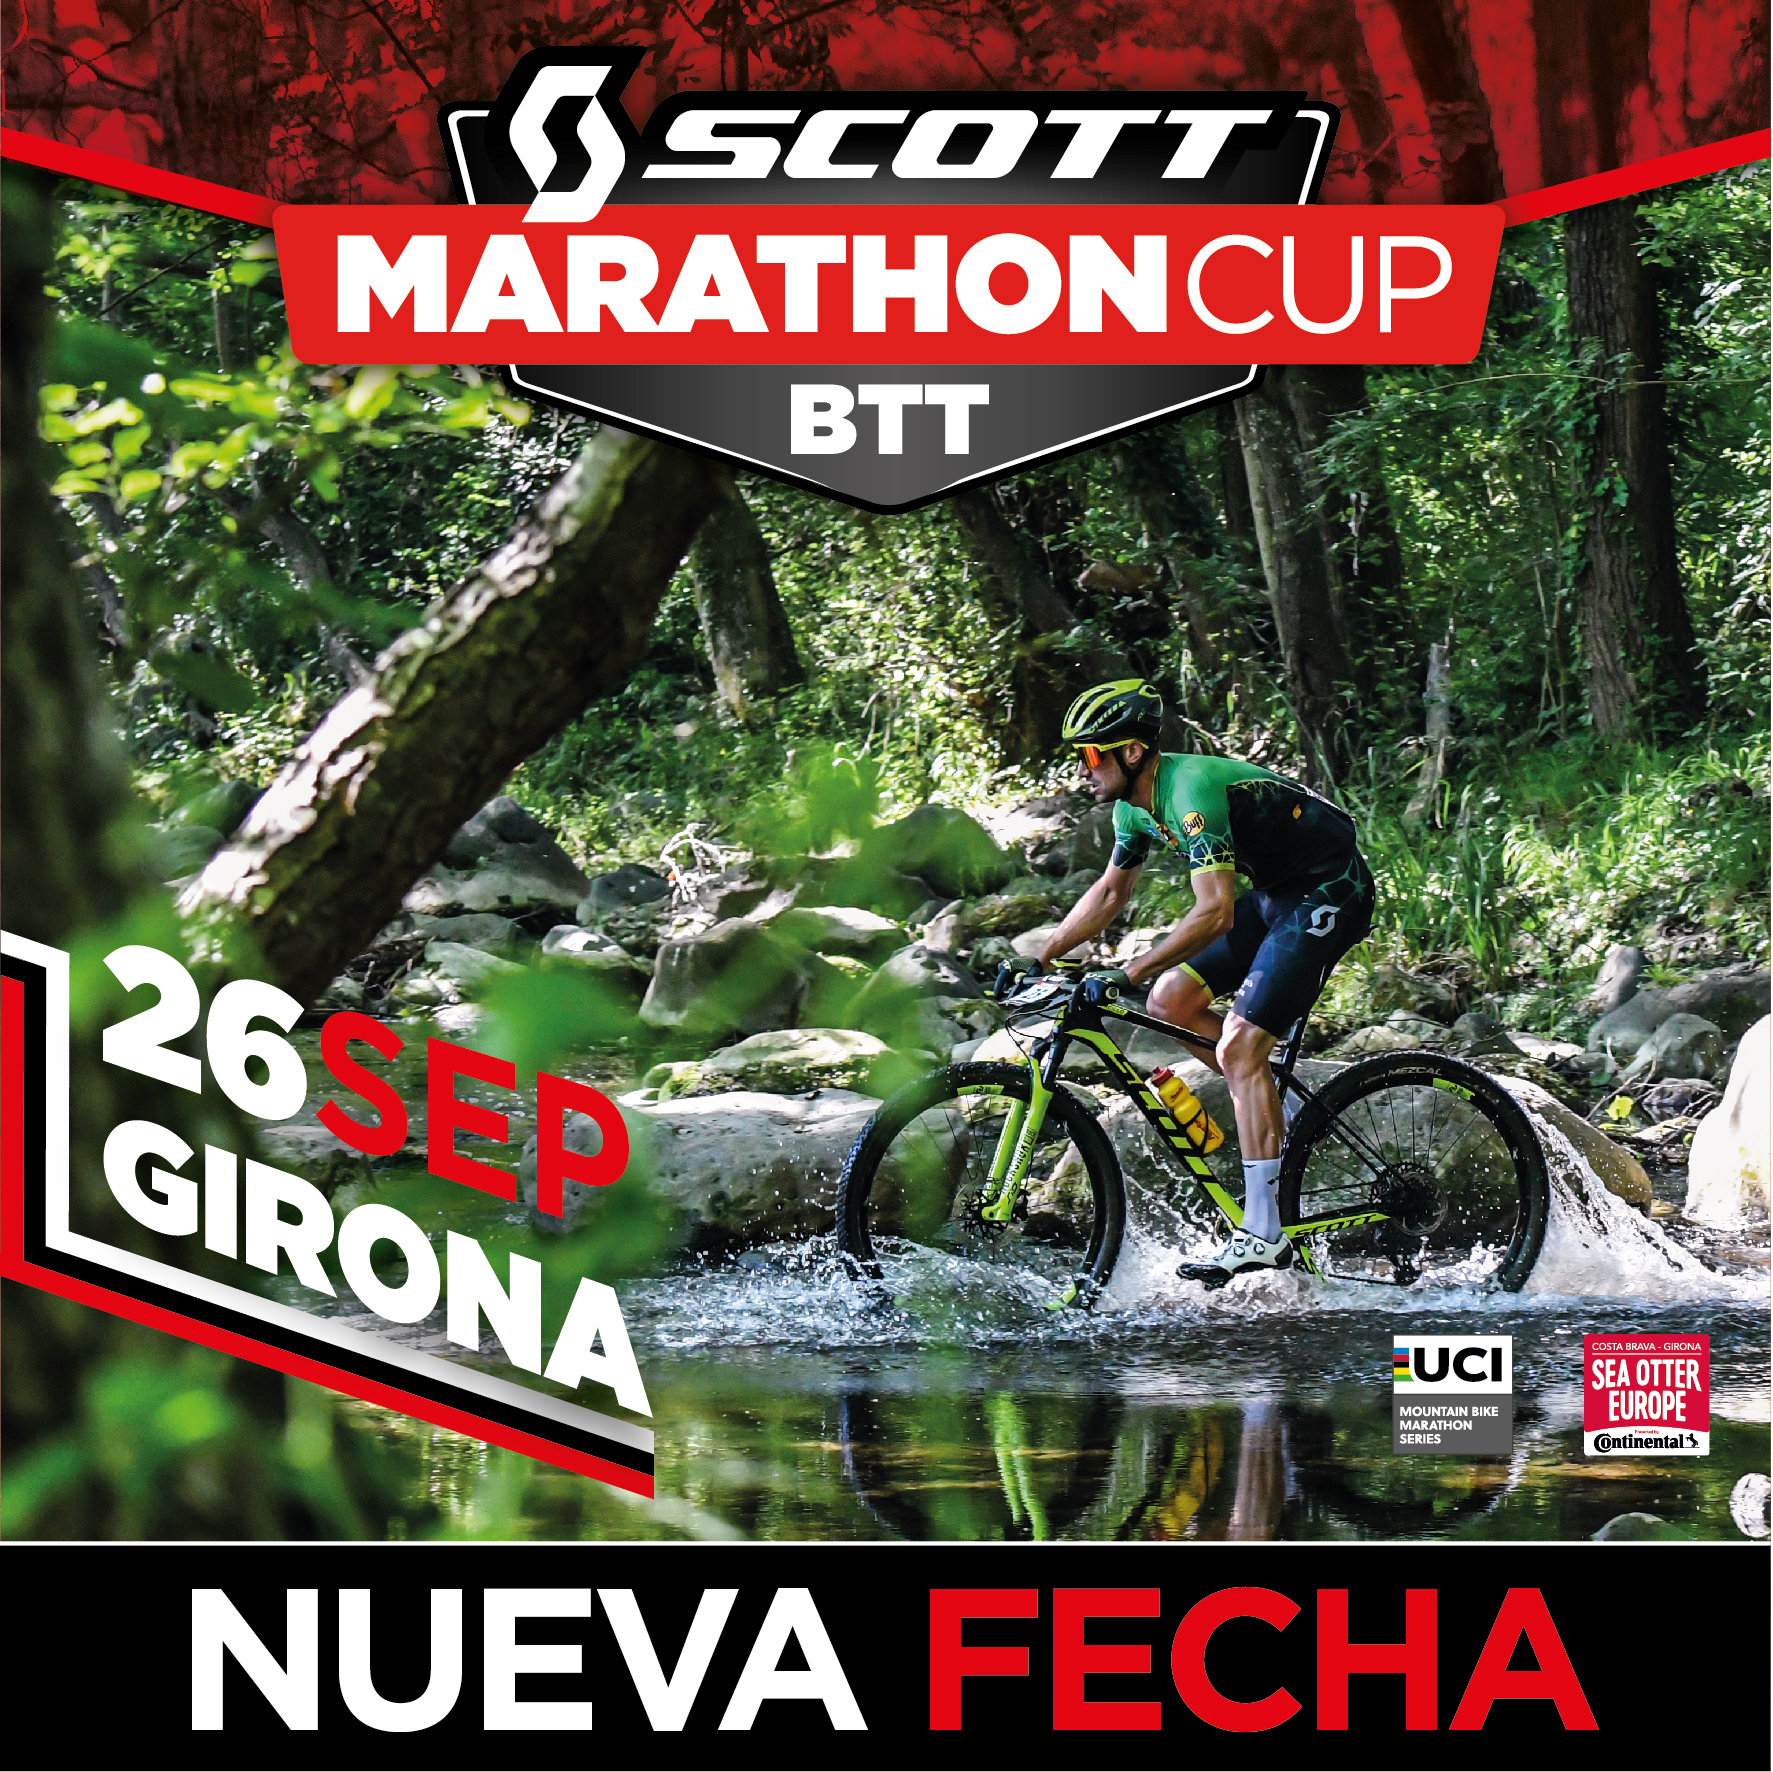 The Sea Otter Europe Costa Brava-Girona Bike Show 2020 has been postponed and will now take place from 25 to 27 September